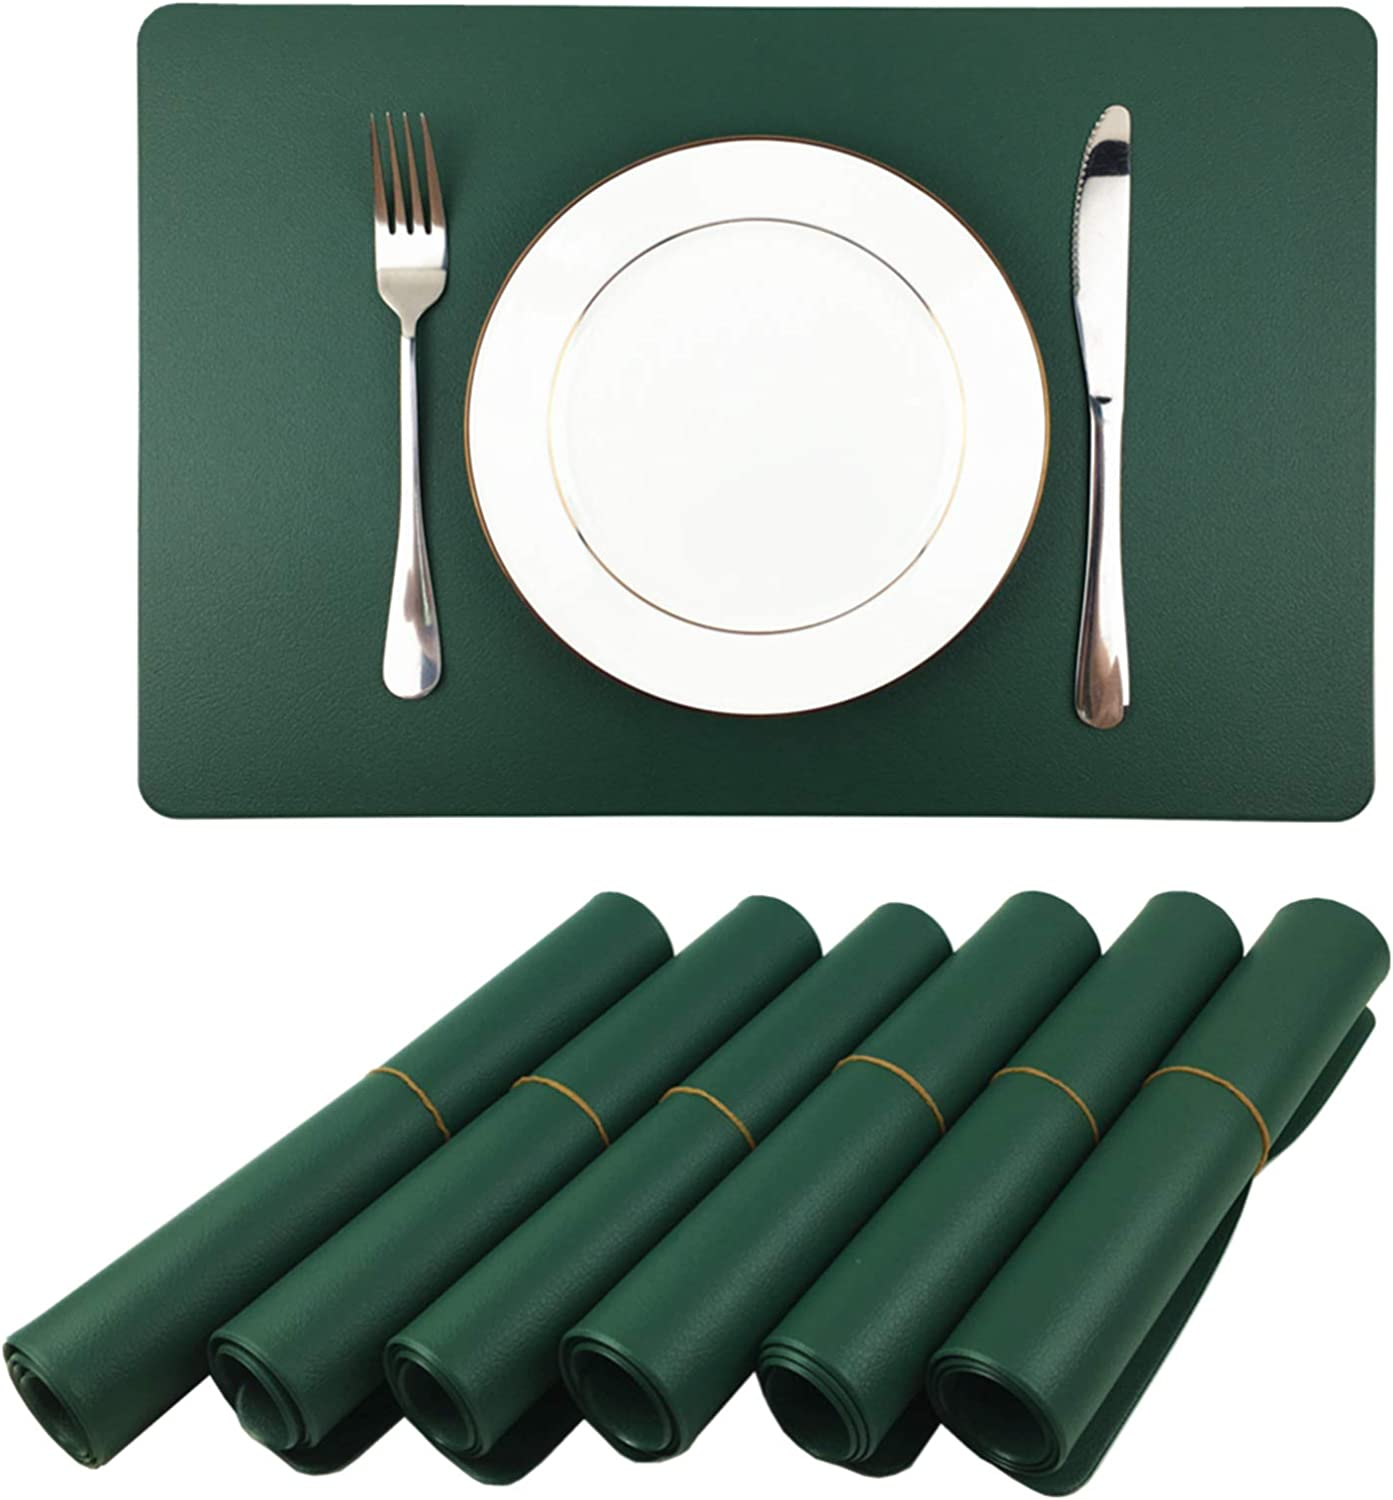 WAZAIGUR specialty shop Placemats Placemat for Dining Table Year-end annual account Waterproof to Easy